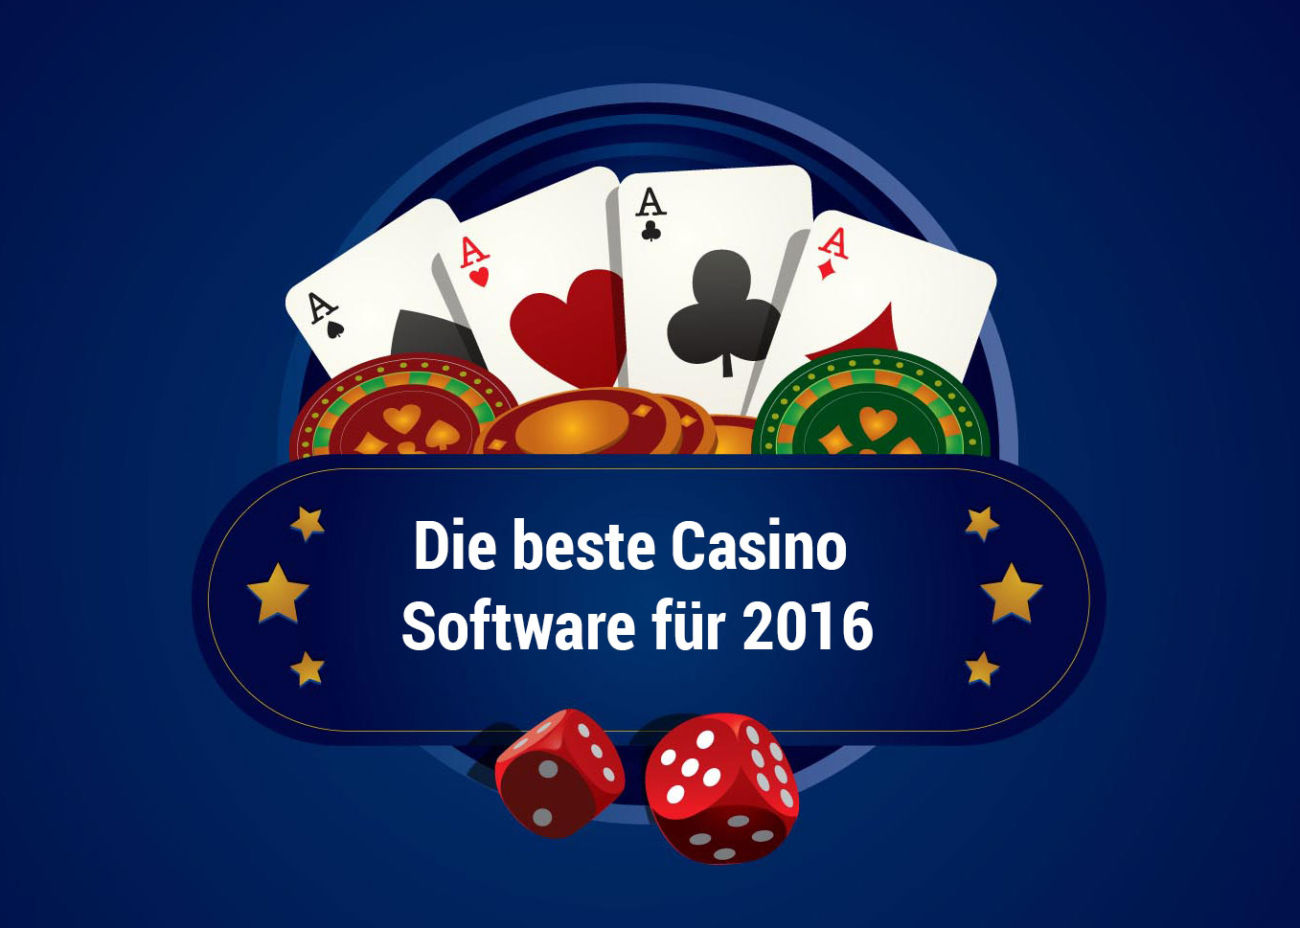 beste online casino forum casino games dice